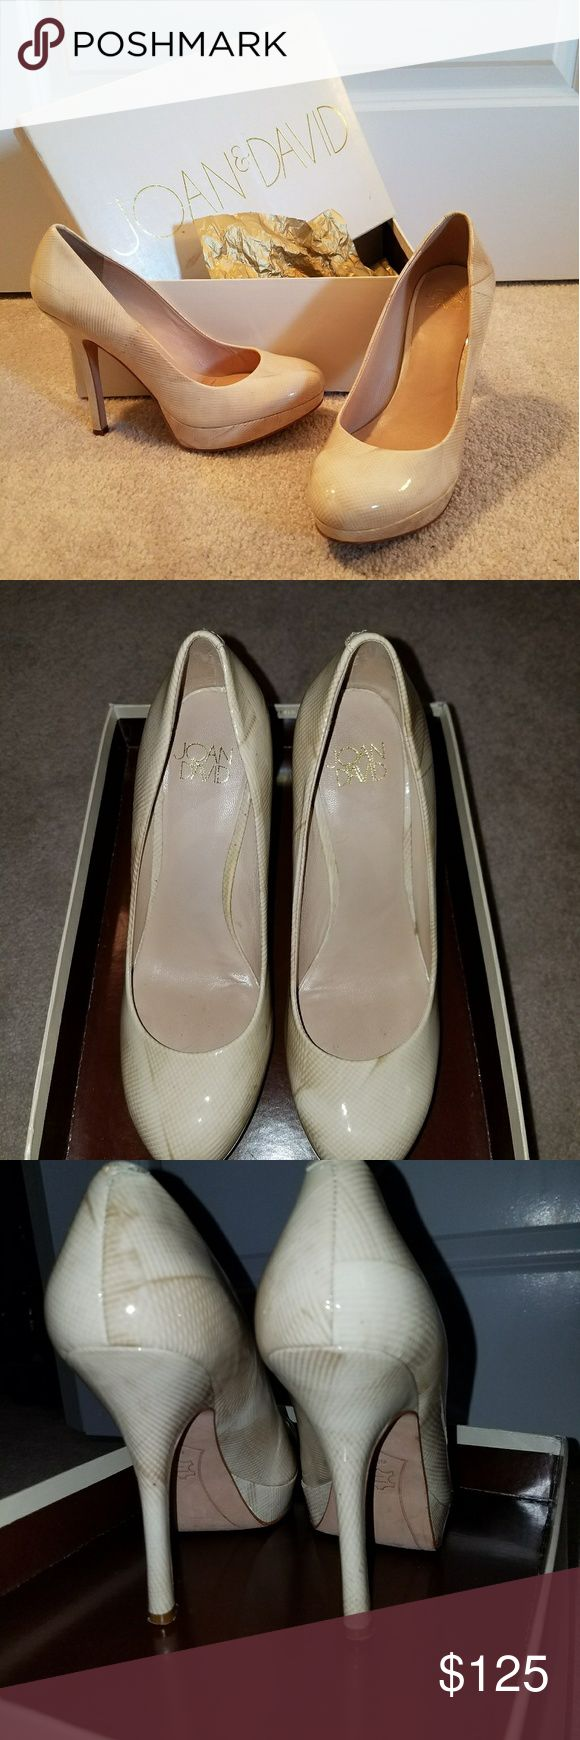 "Joan & David ""Flipp"" Ivory Mult. Heels Ivory patent leather heel with a light pattern, platform toe, with genuine leather sole. Left shoe has 2 pin sized holes on the platform. Only worn a few times. Joan & David Shoes Heels"